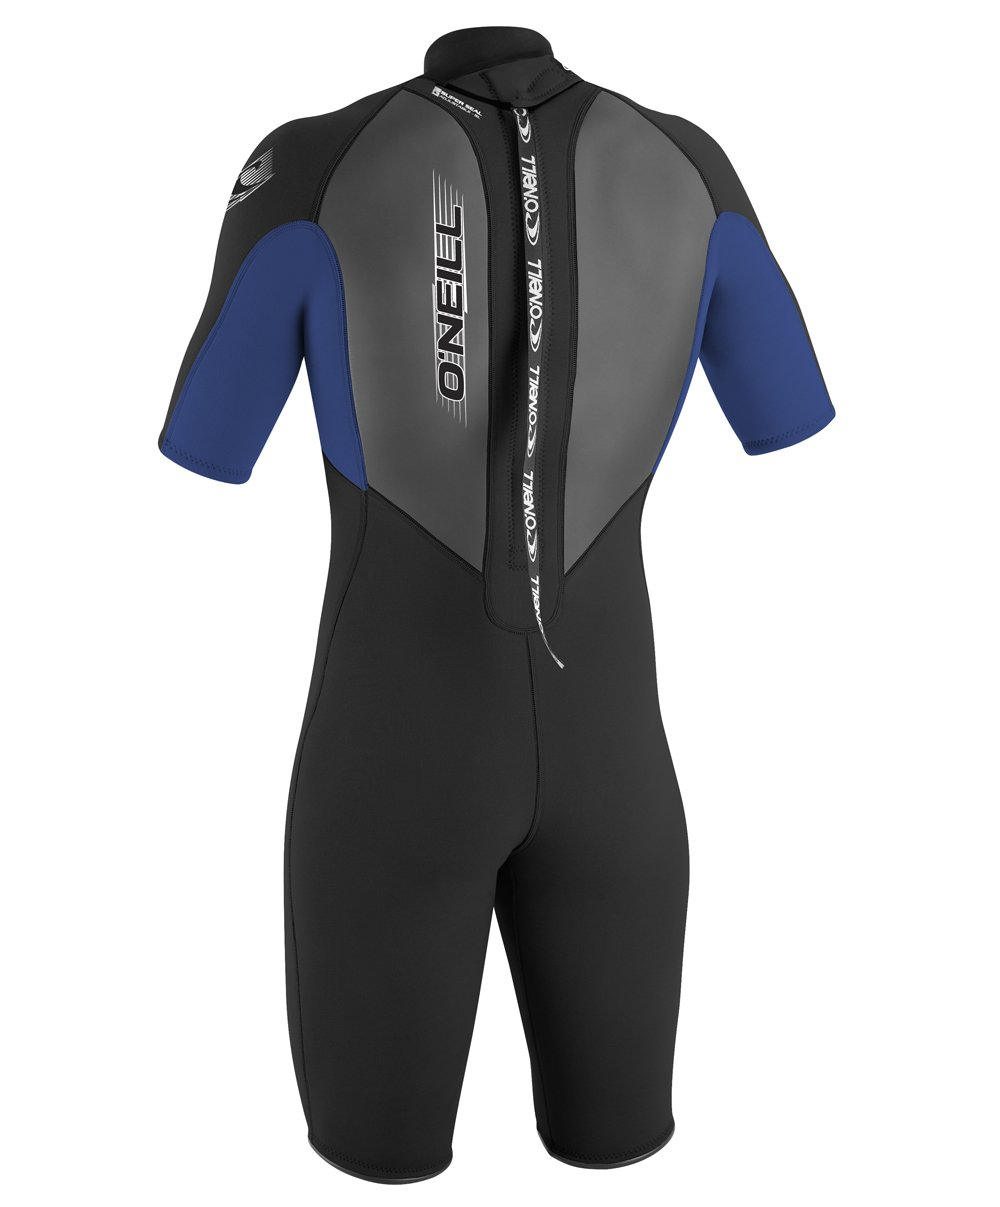 O'Neill Youth Reactor 2mm Back Zip Spring Wetsuit, Black/Pacific/Black, 4 by O'Neill Wetsuits (Image #3)